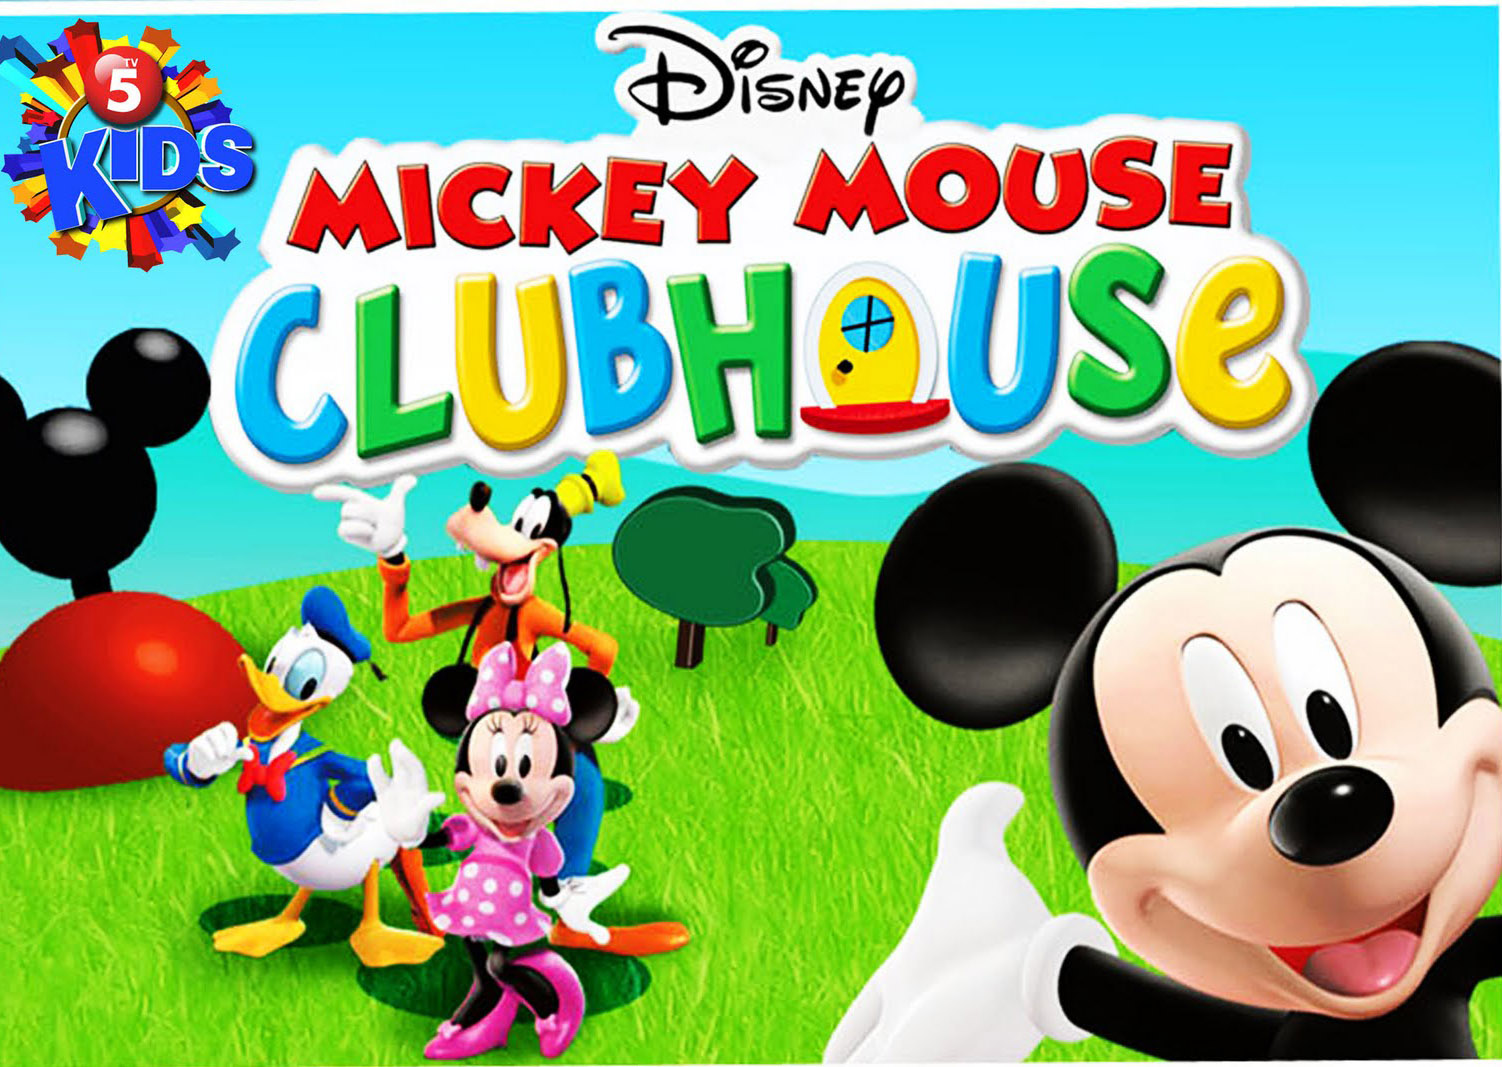 Disney Mickey Mouse Clubhouse Characters Car Interior Design